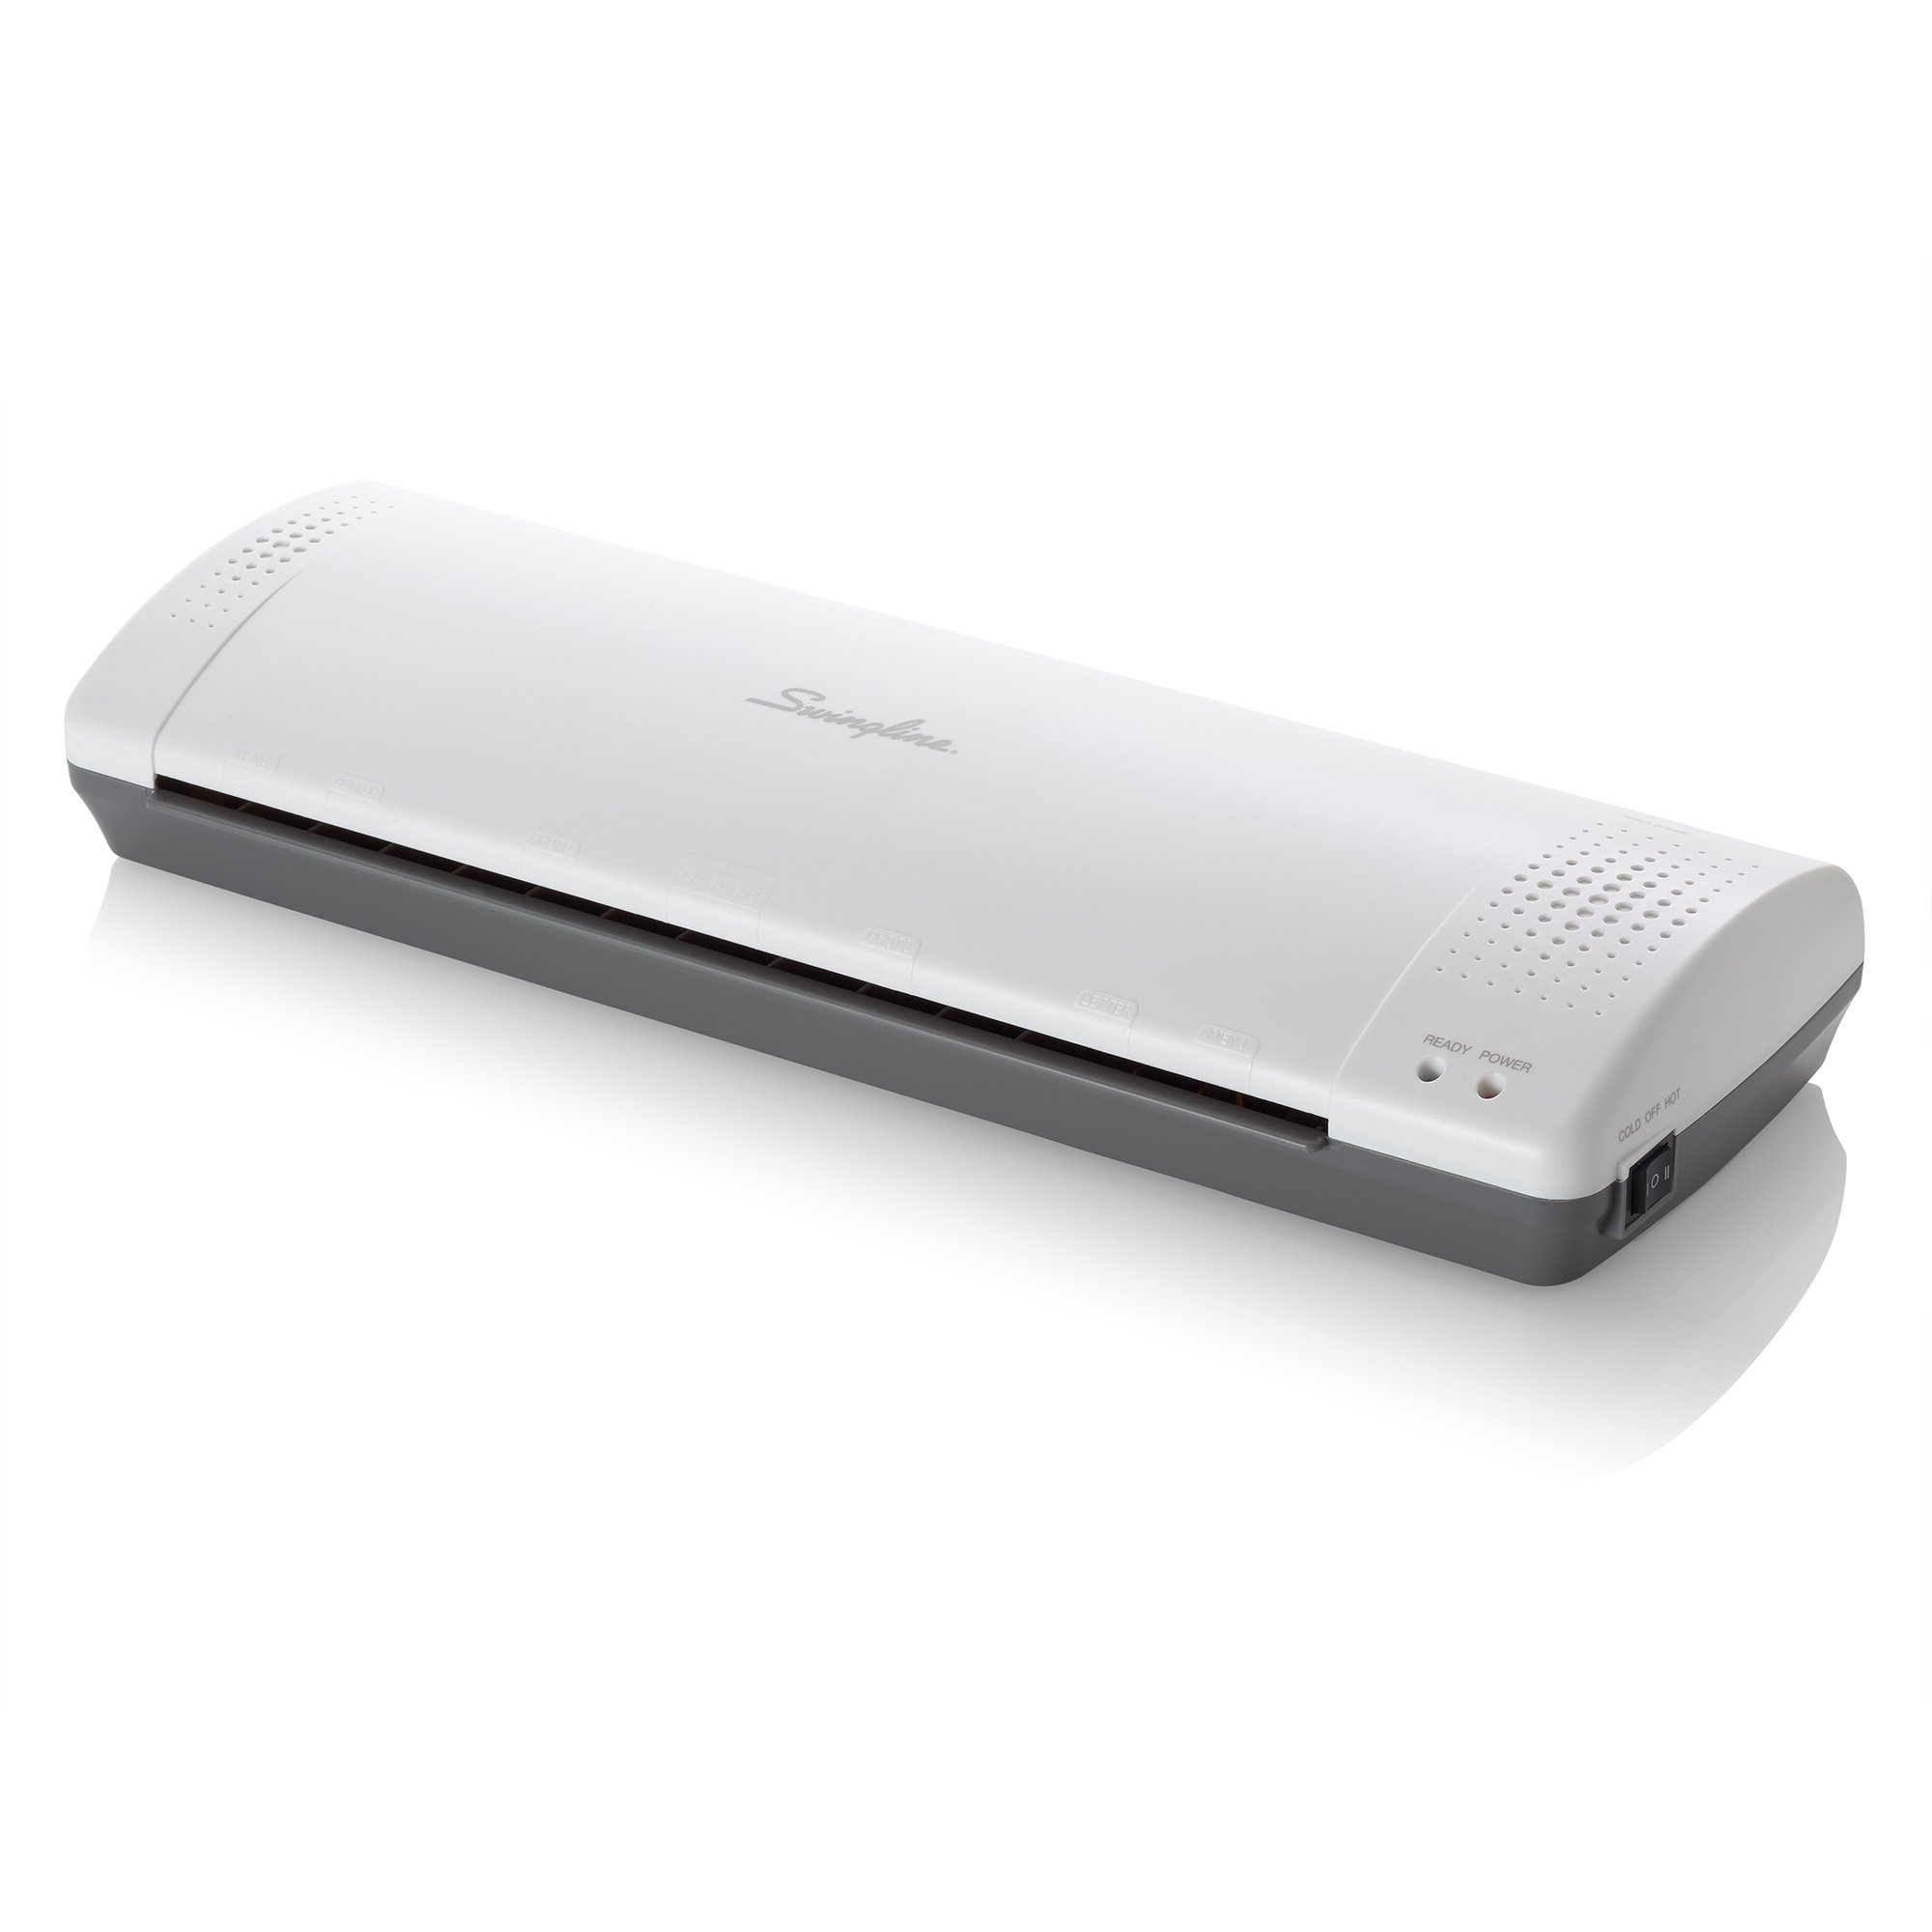 Swingline Laminator, Thermal, Inspire Plus Lamination Machine, 12'' Max Width, Quick Warm-up, Includes Laminating Pouches, White / Gray (1701867)